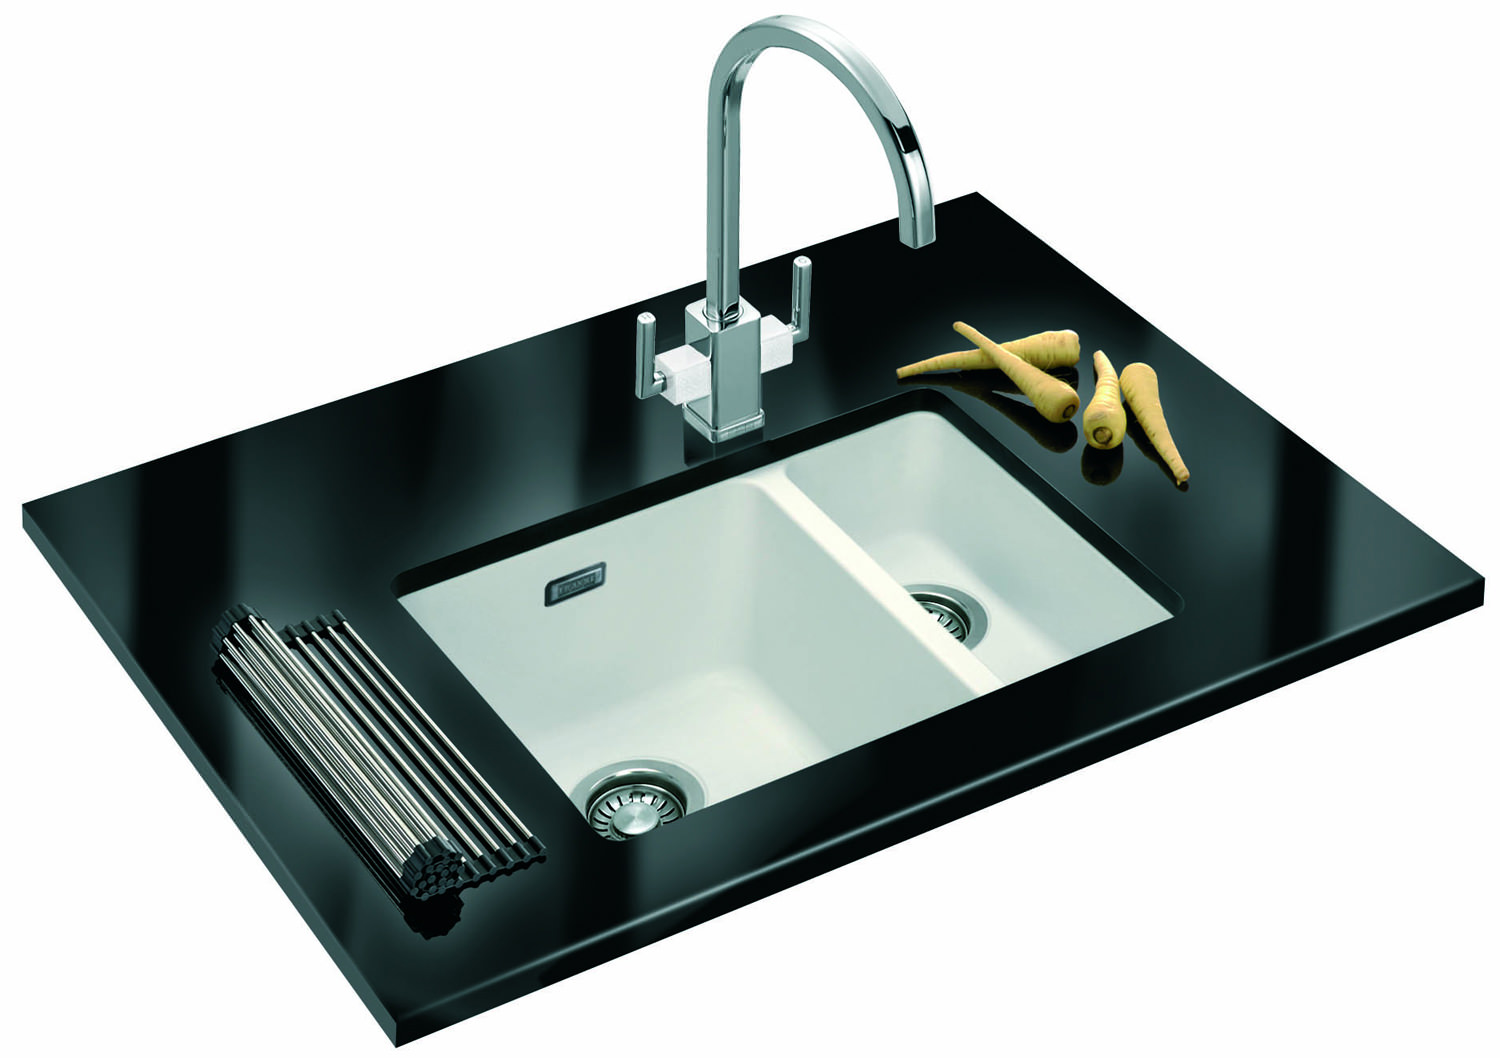 ... of Franke Kubus KBG 160 Fragranite White 1.5 Bowl Undermount Sink